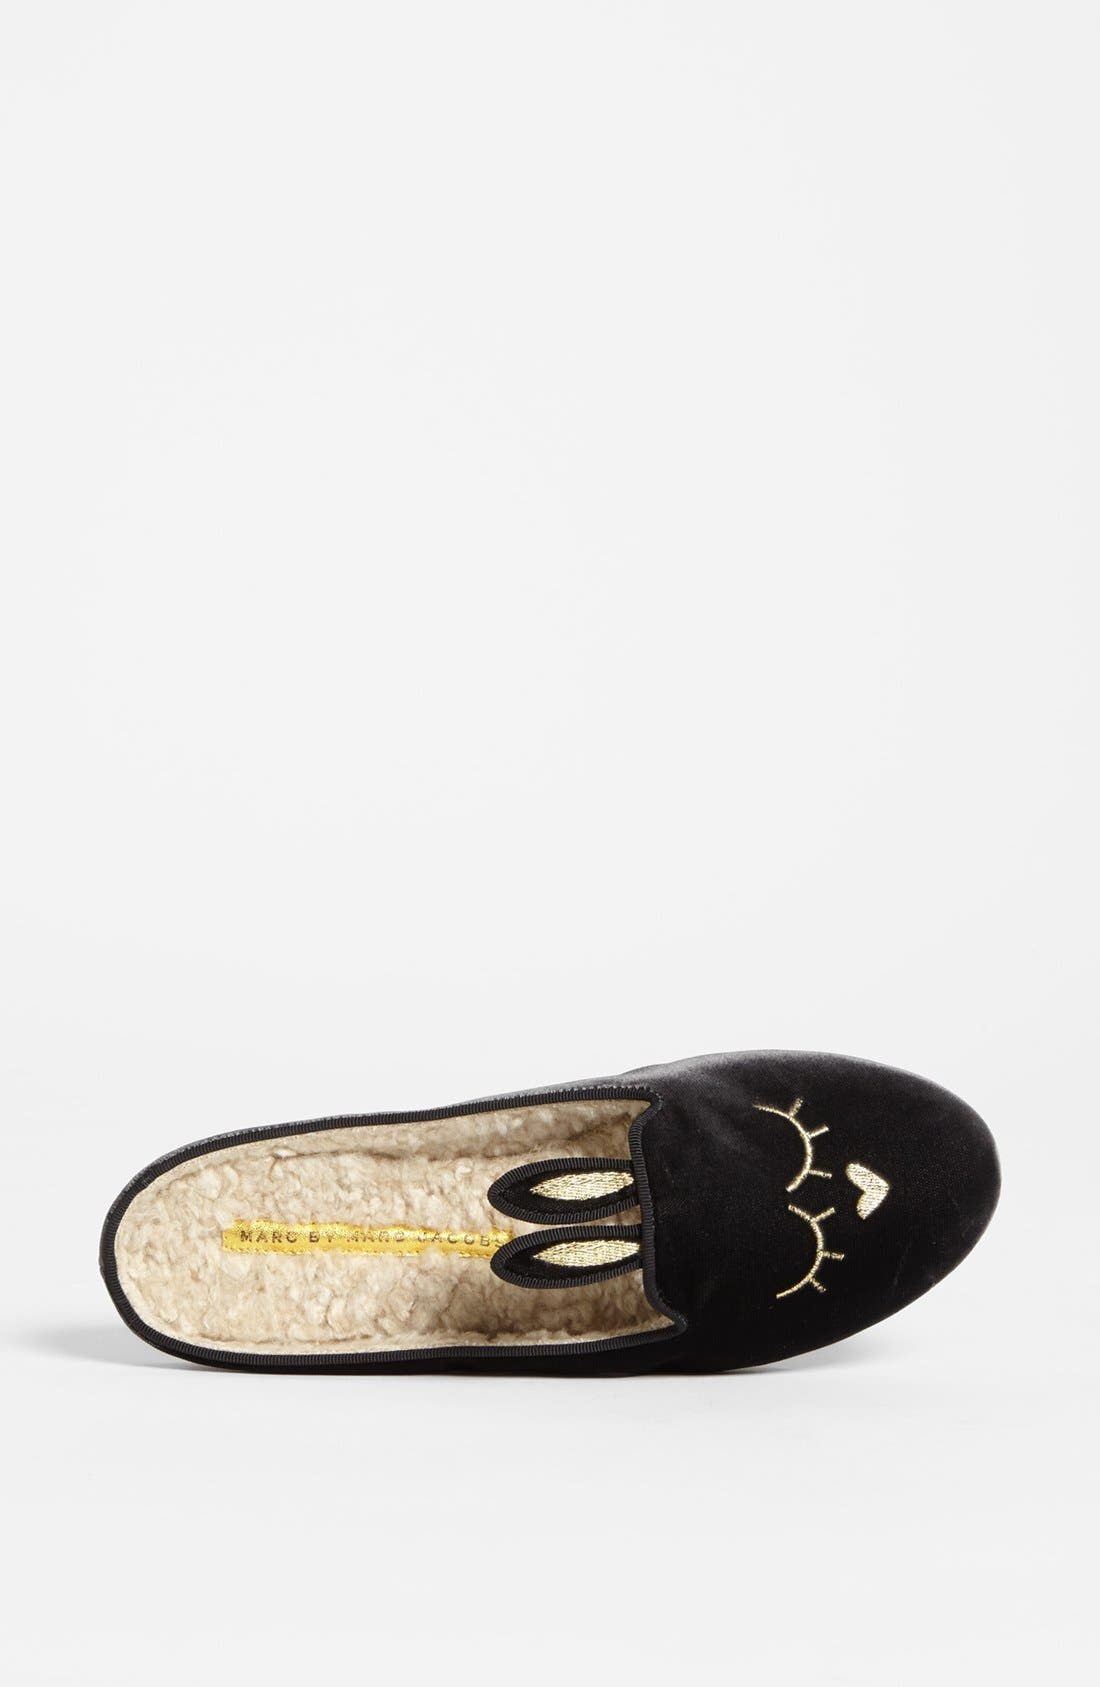 Alternate Image 3  - MARC BY MARC JACOBS 'Sleeping Bunny' Slipper